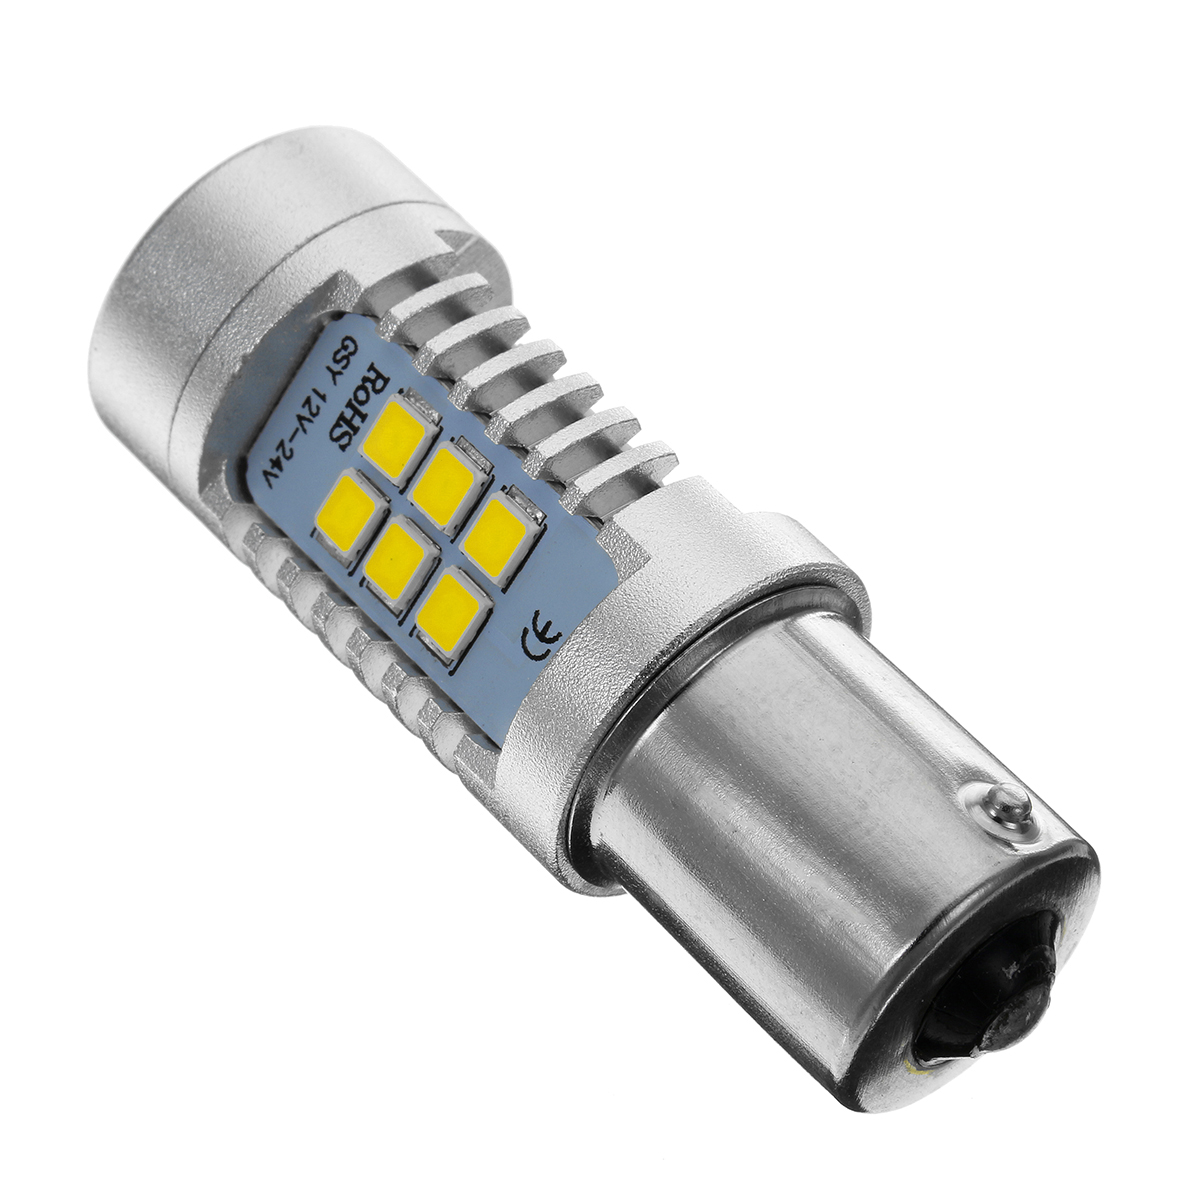 Pair 1156 BA15S 21SMD LED Car Brake Lights Tail Bulb Stop Lamp White/Yellow 12W DC 12V